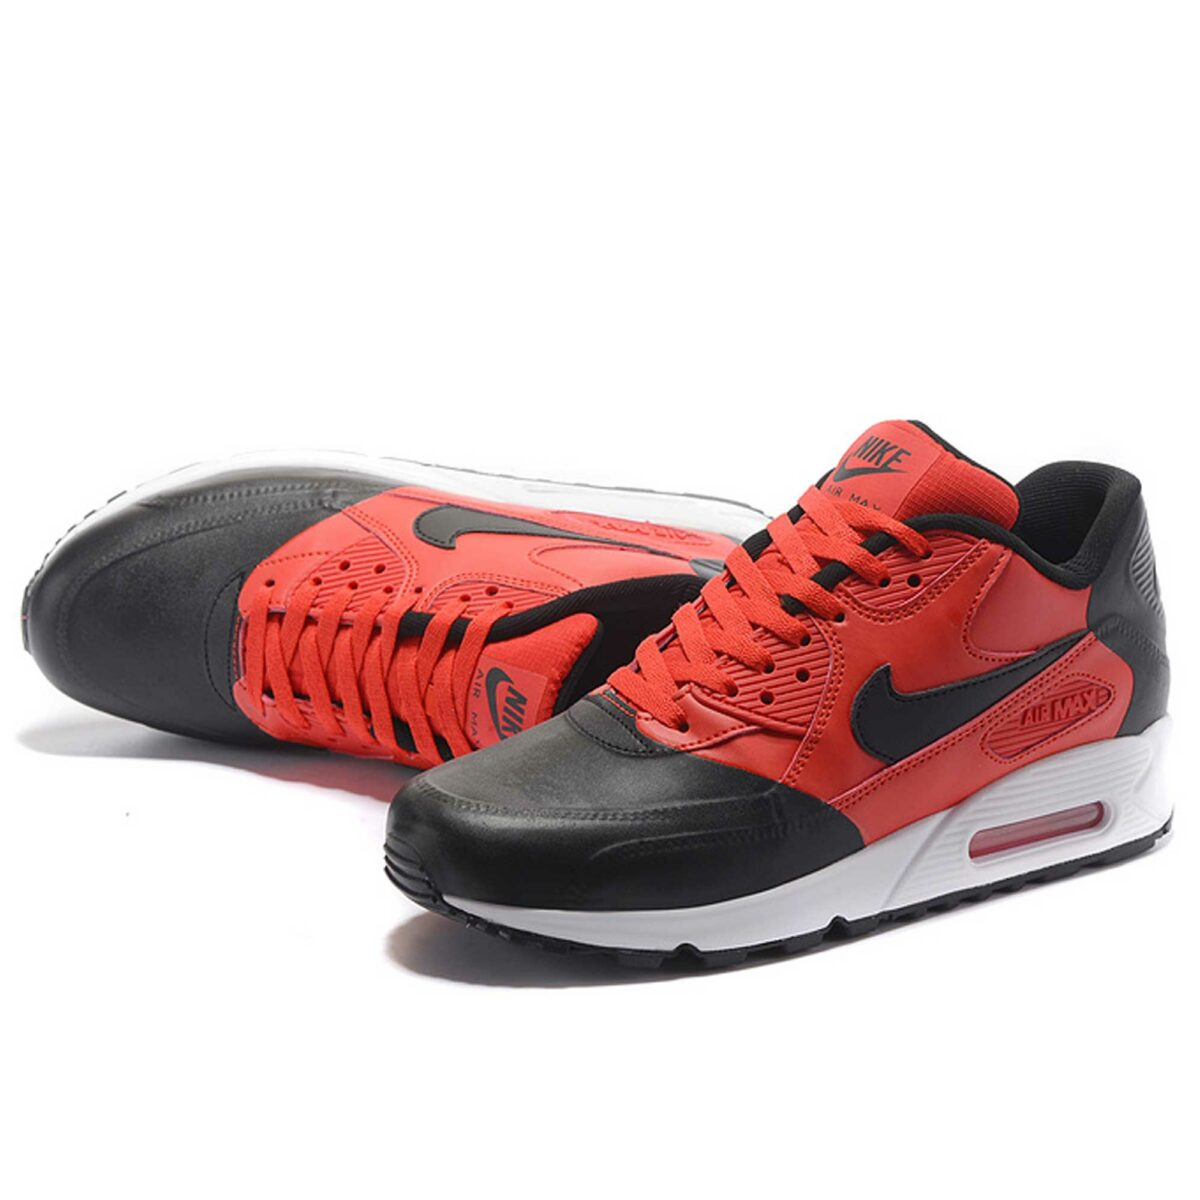 интернет магазин nike air max 90 premium se black red 858954_002 купить